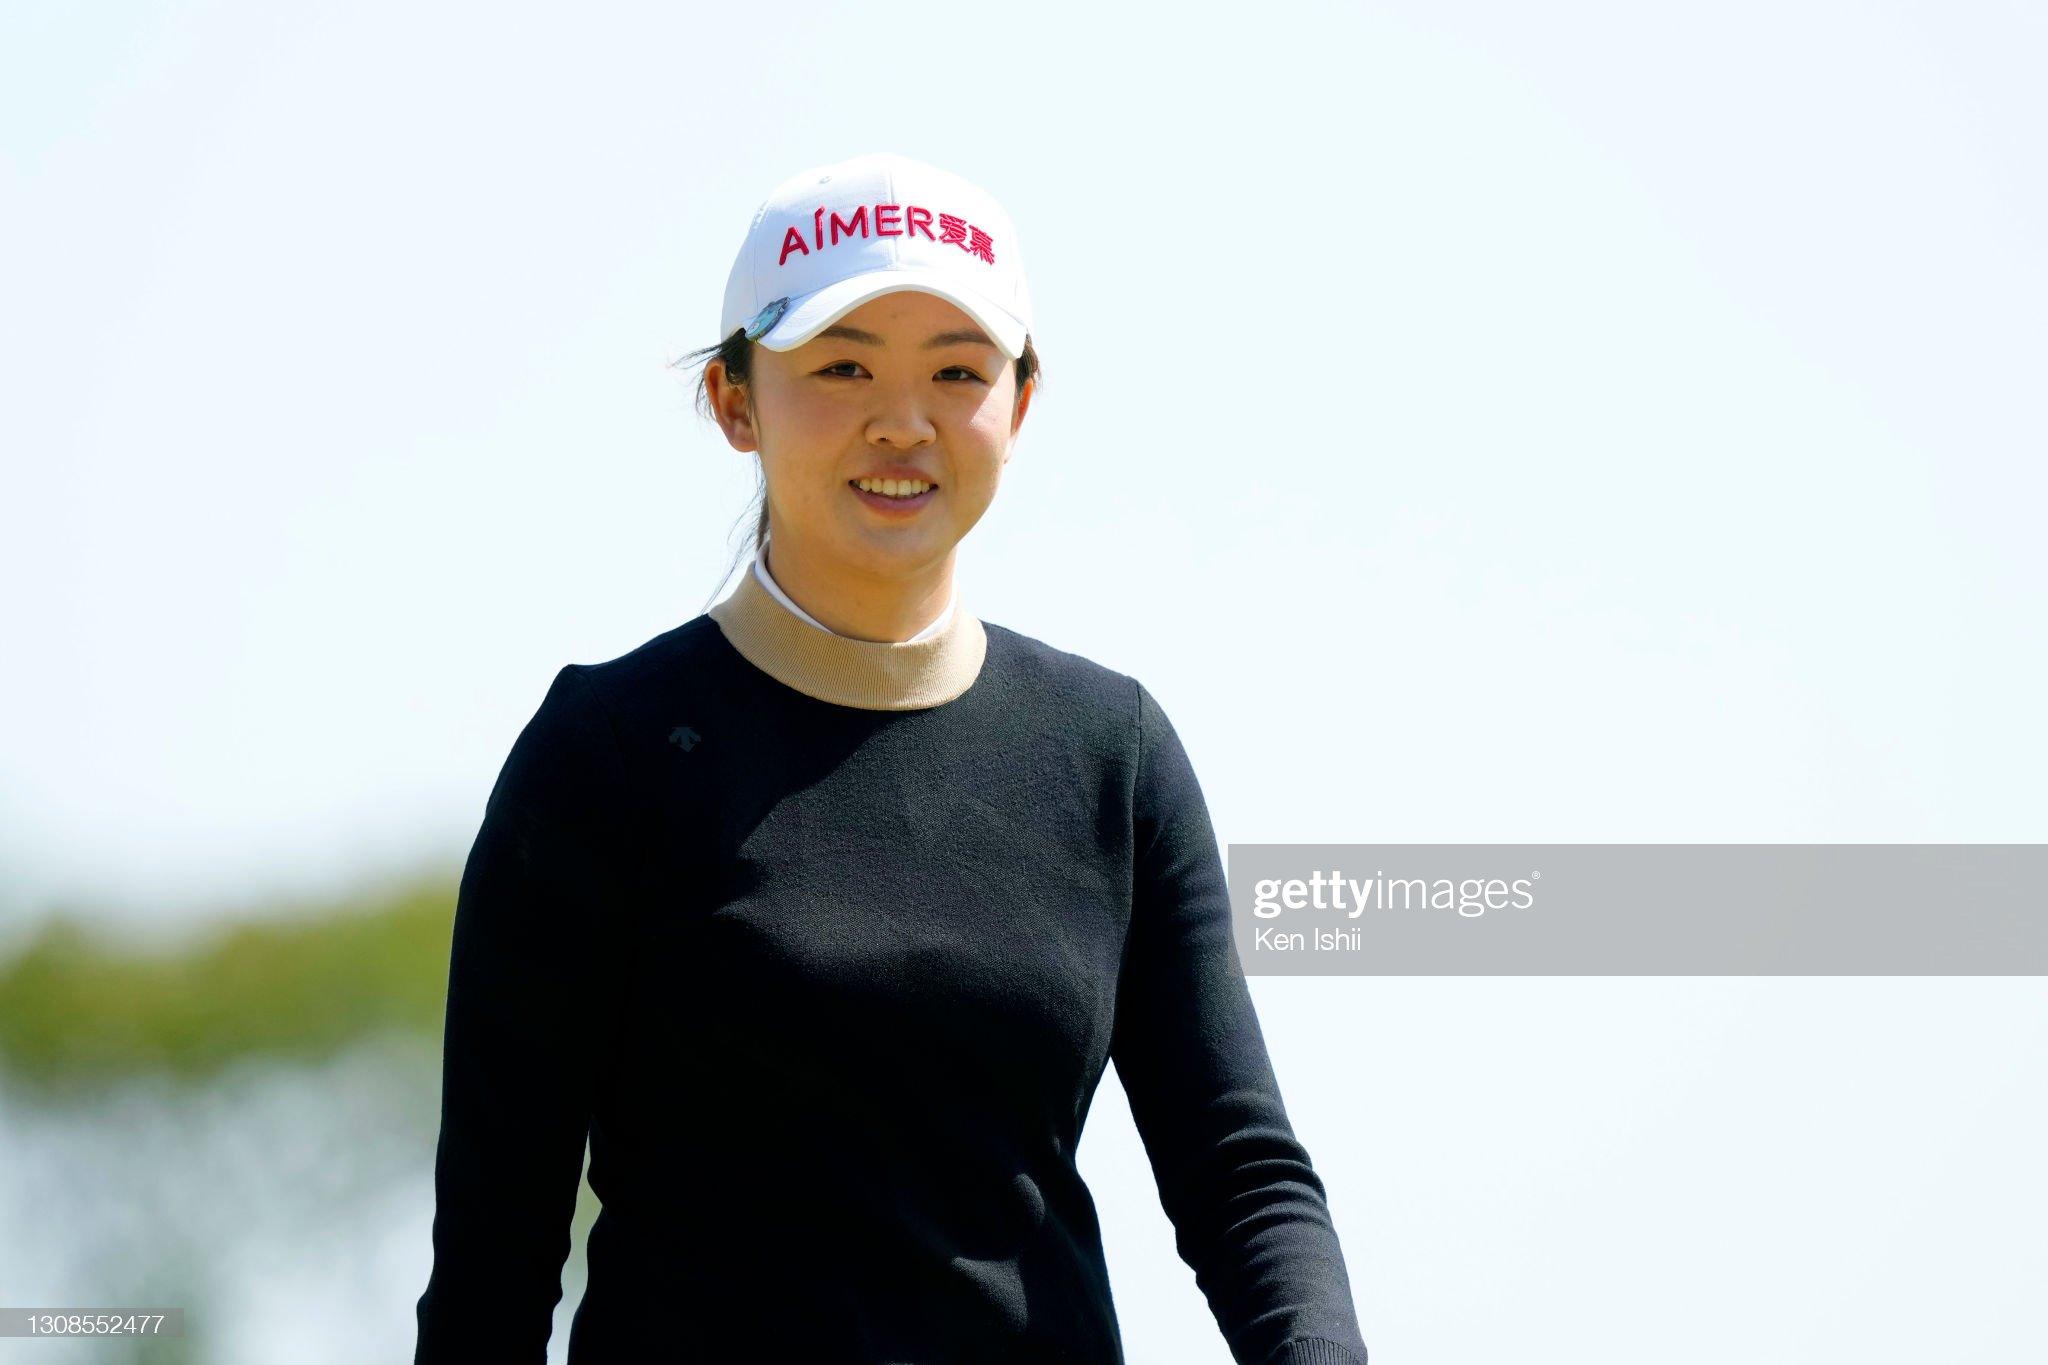 https://media.gettyimages.com/photos/simin-feng-of-china-is-seen-on-the-17th-hole-during-the-first-round-picture-id1308552477?s=2048x2048